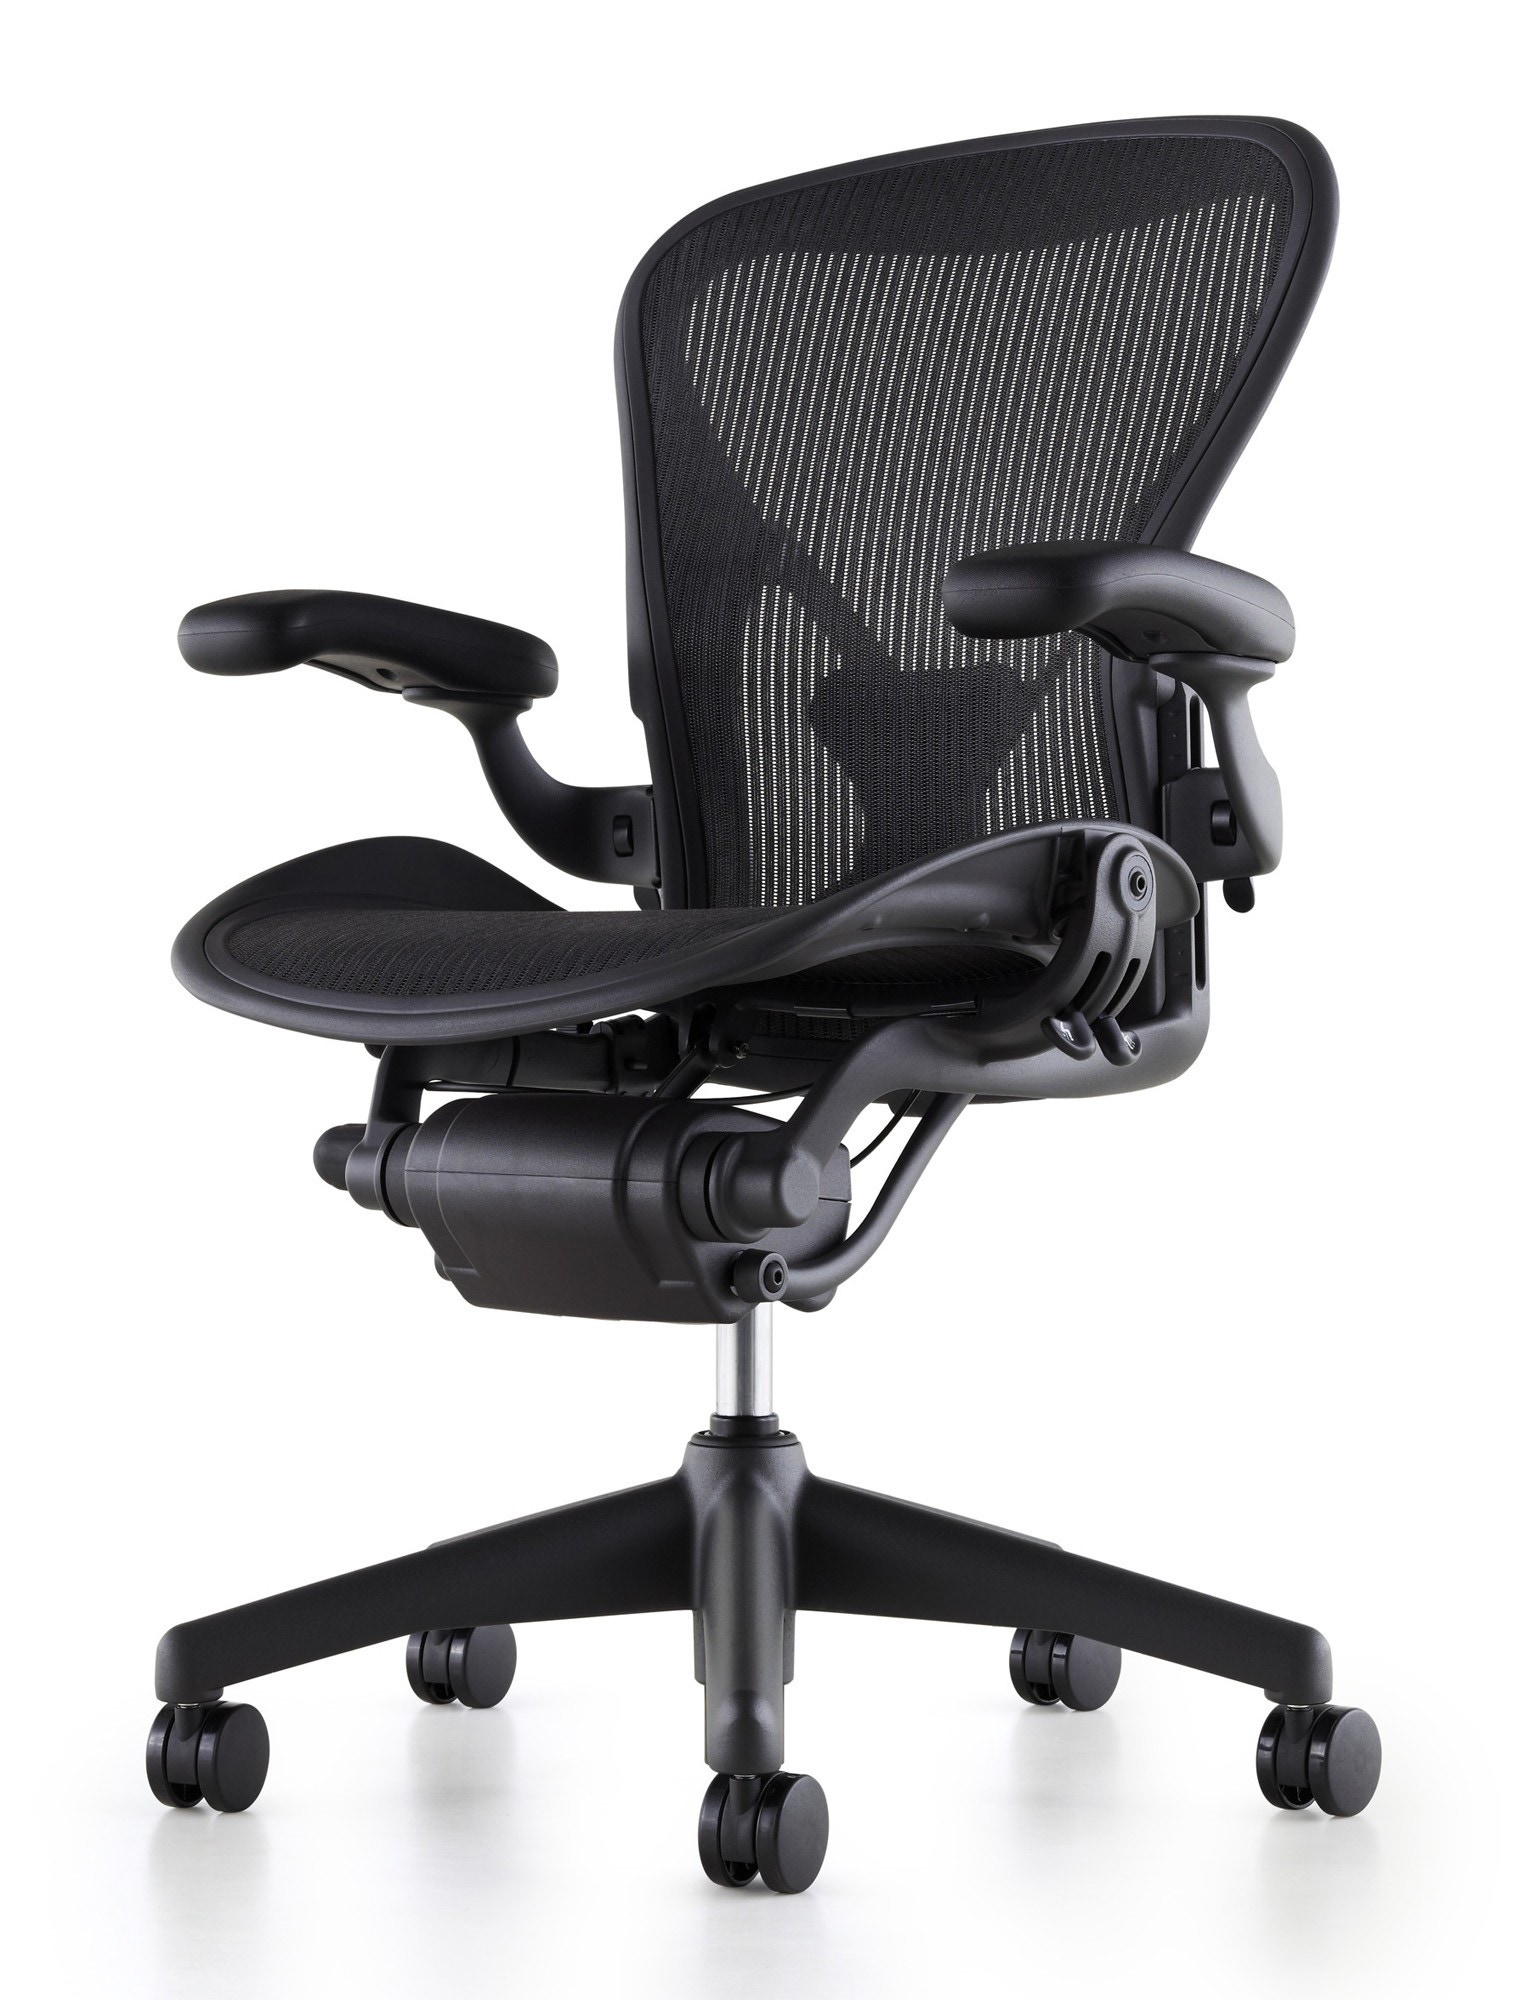 Herman miller chair - Herman Miller Chair 1